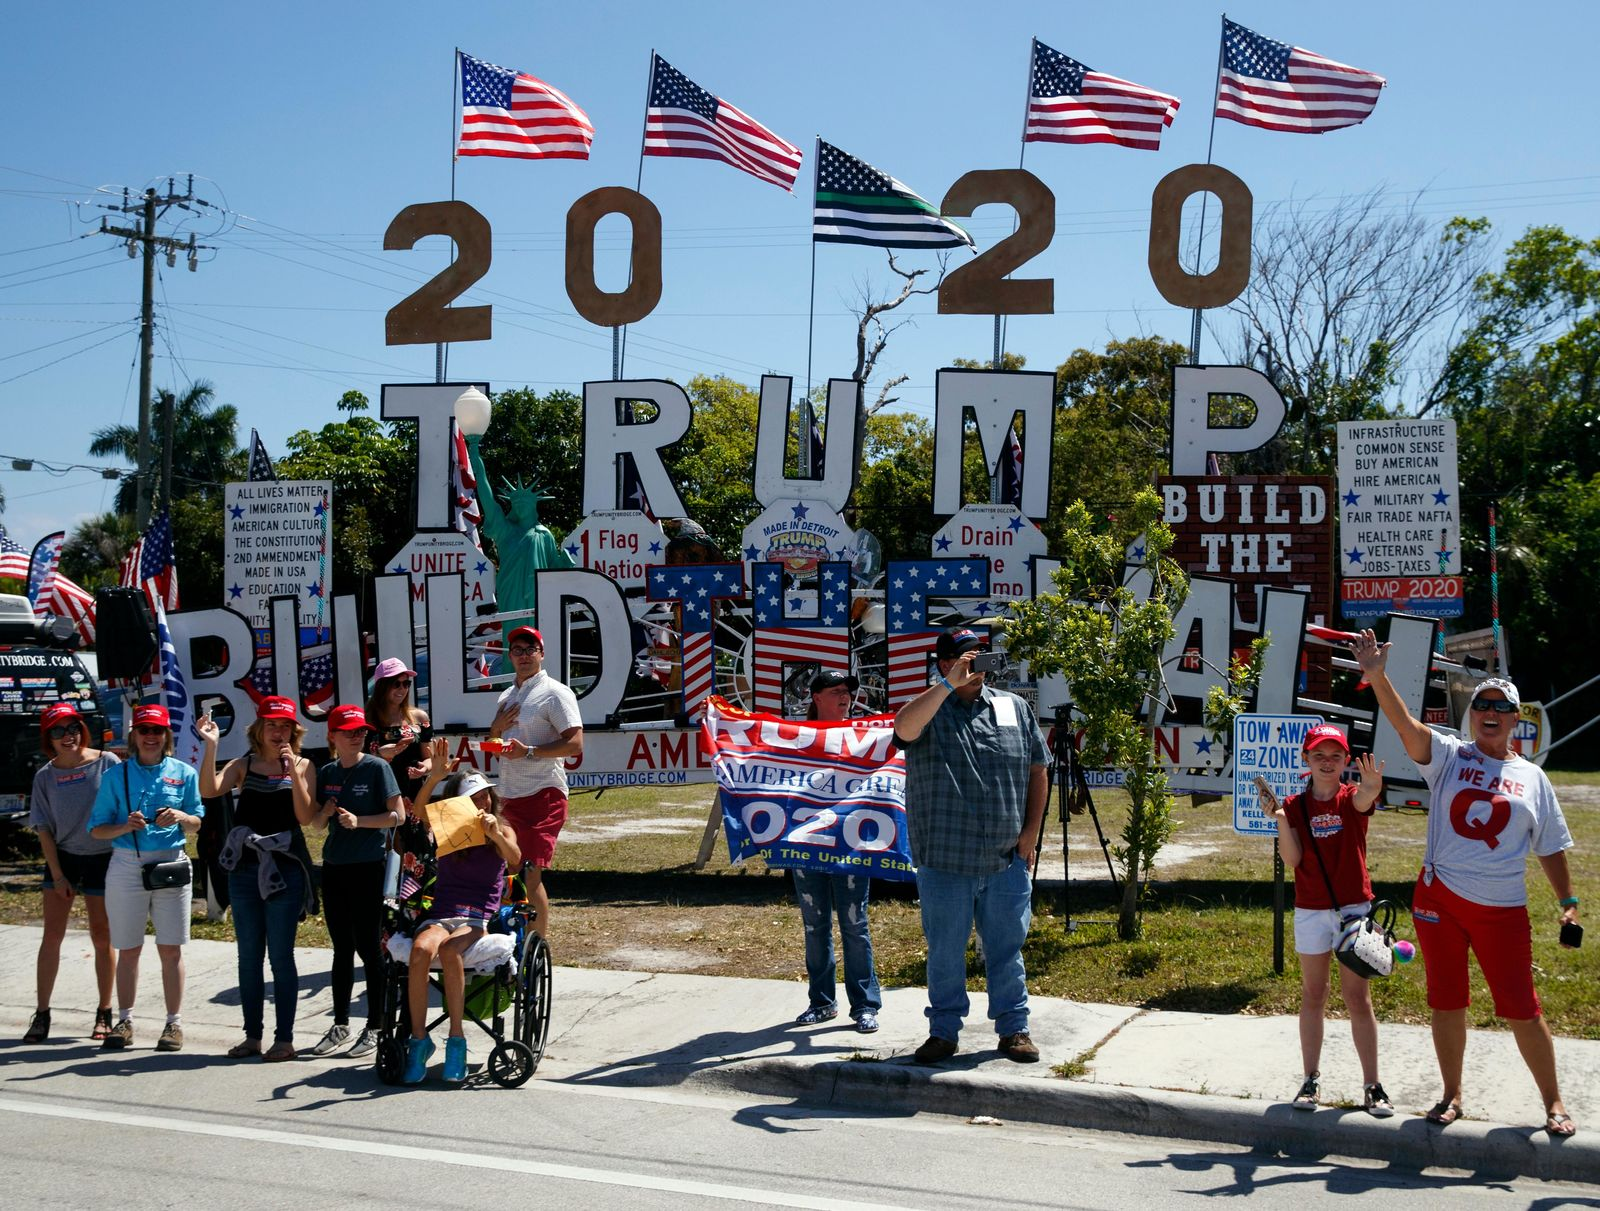 Supporters of President Donald Trump are seen from the media van in the motorcade accompanying the president in West Palm Beach, Fla., Saturday, March 23, 2019, en route to Mar-a-Lago in Palm Beach, Fla. (AP Photo/Carolyn Kaster)